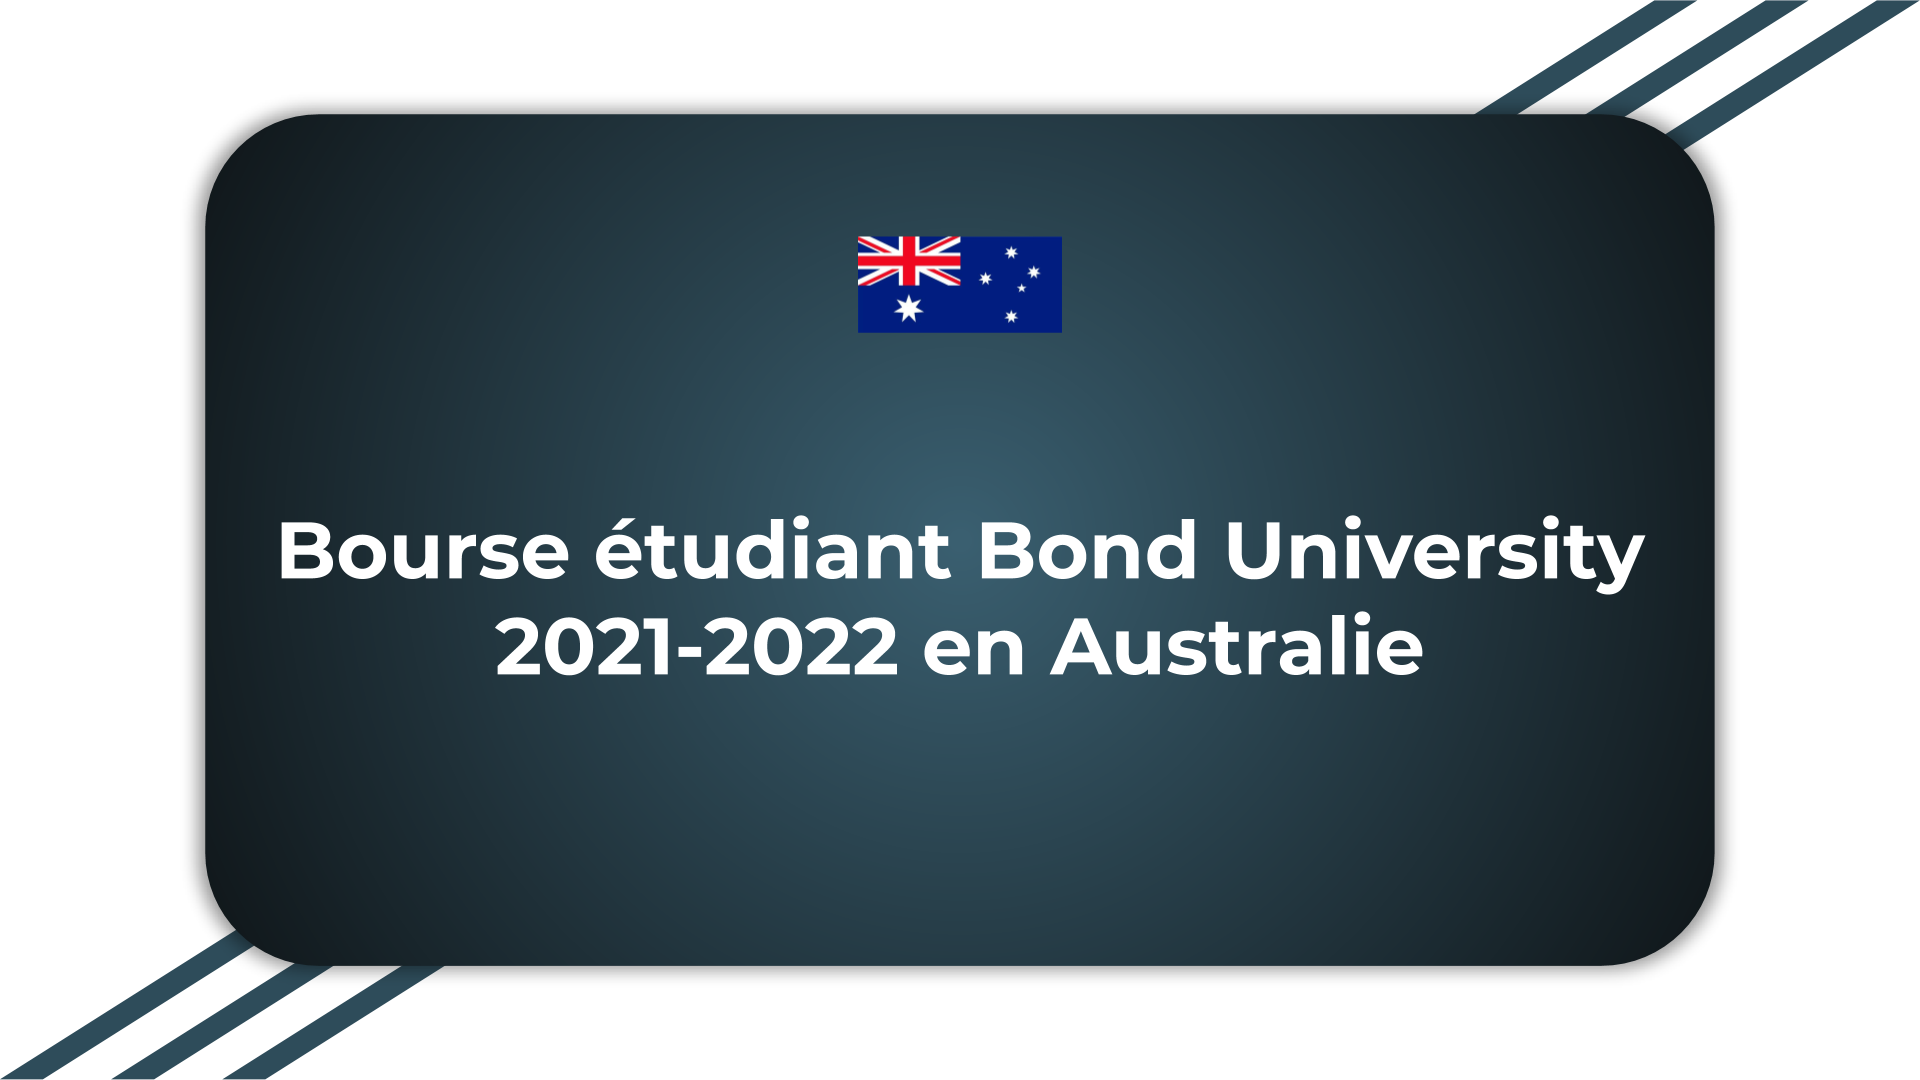 Bourse étudiant Bond University